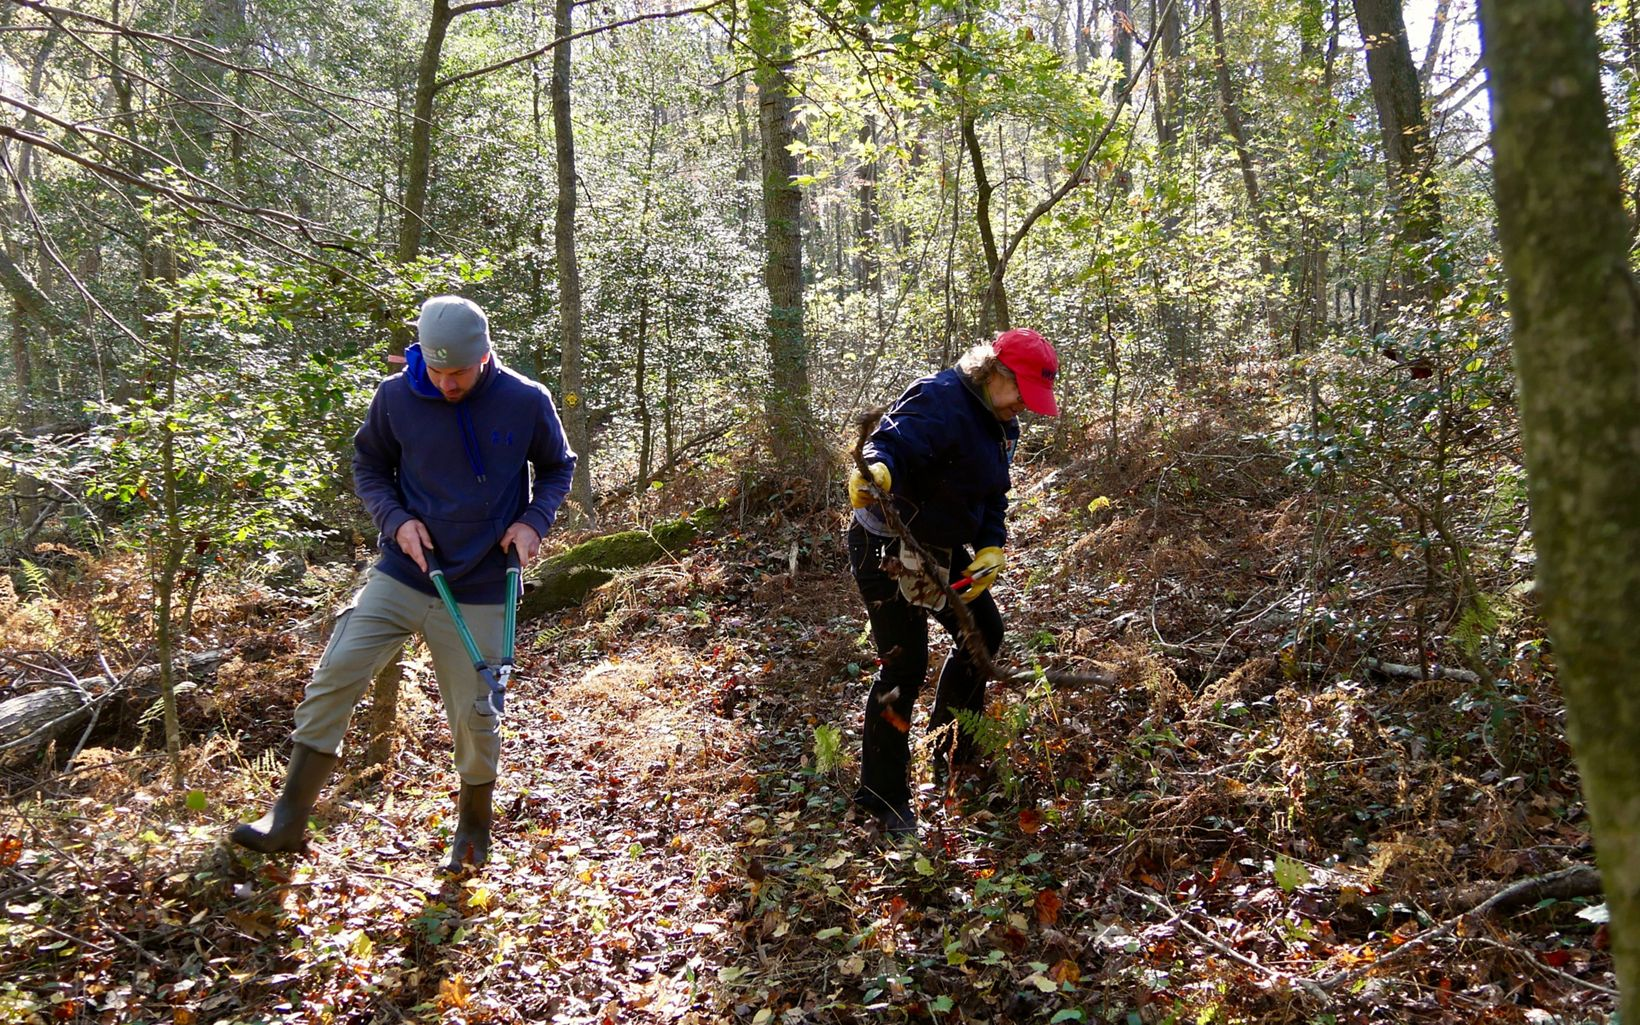 Members of the Nassawango Stewardship Committee work along a section of trail during a preserve workday.